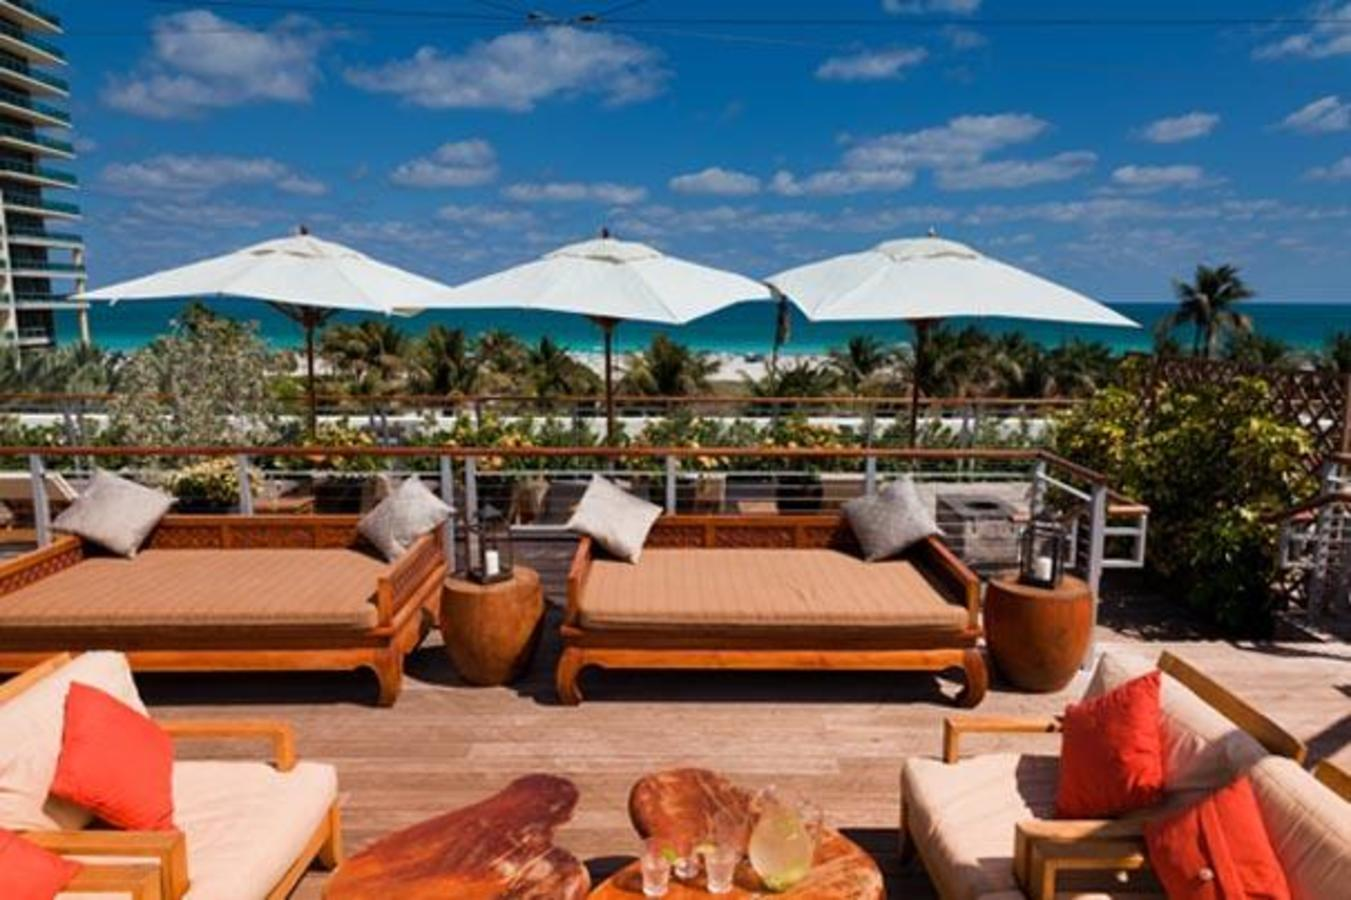 Lounge atop the hotel on daybeds after your treatment